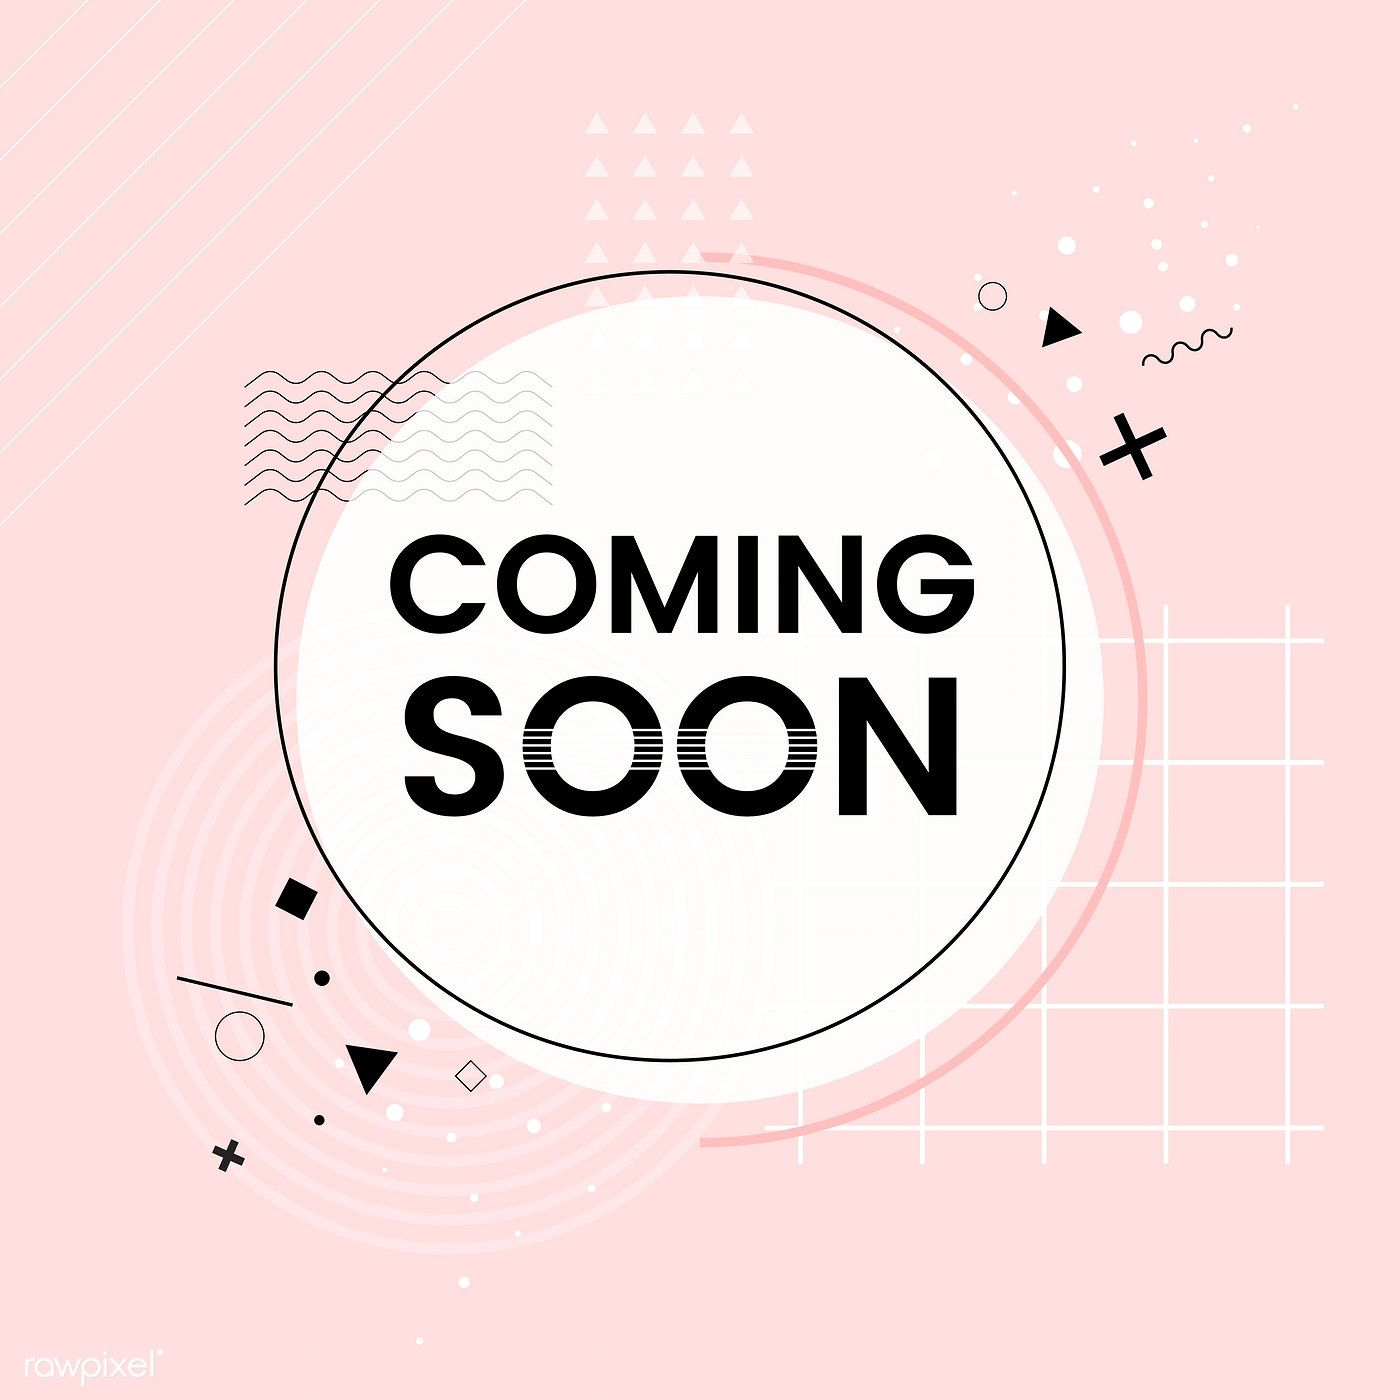 Coming soon shop announcement vector free image by